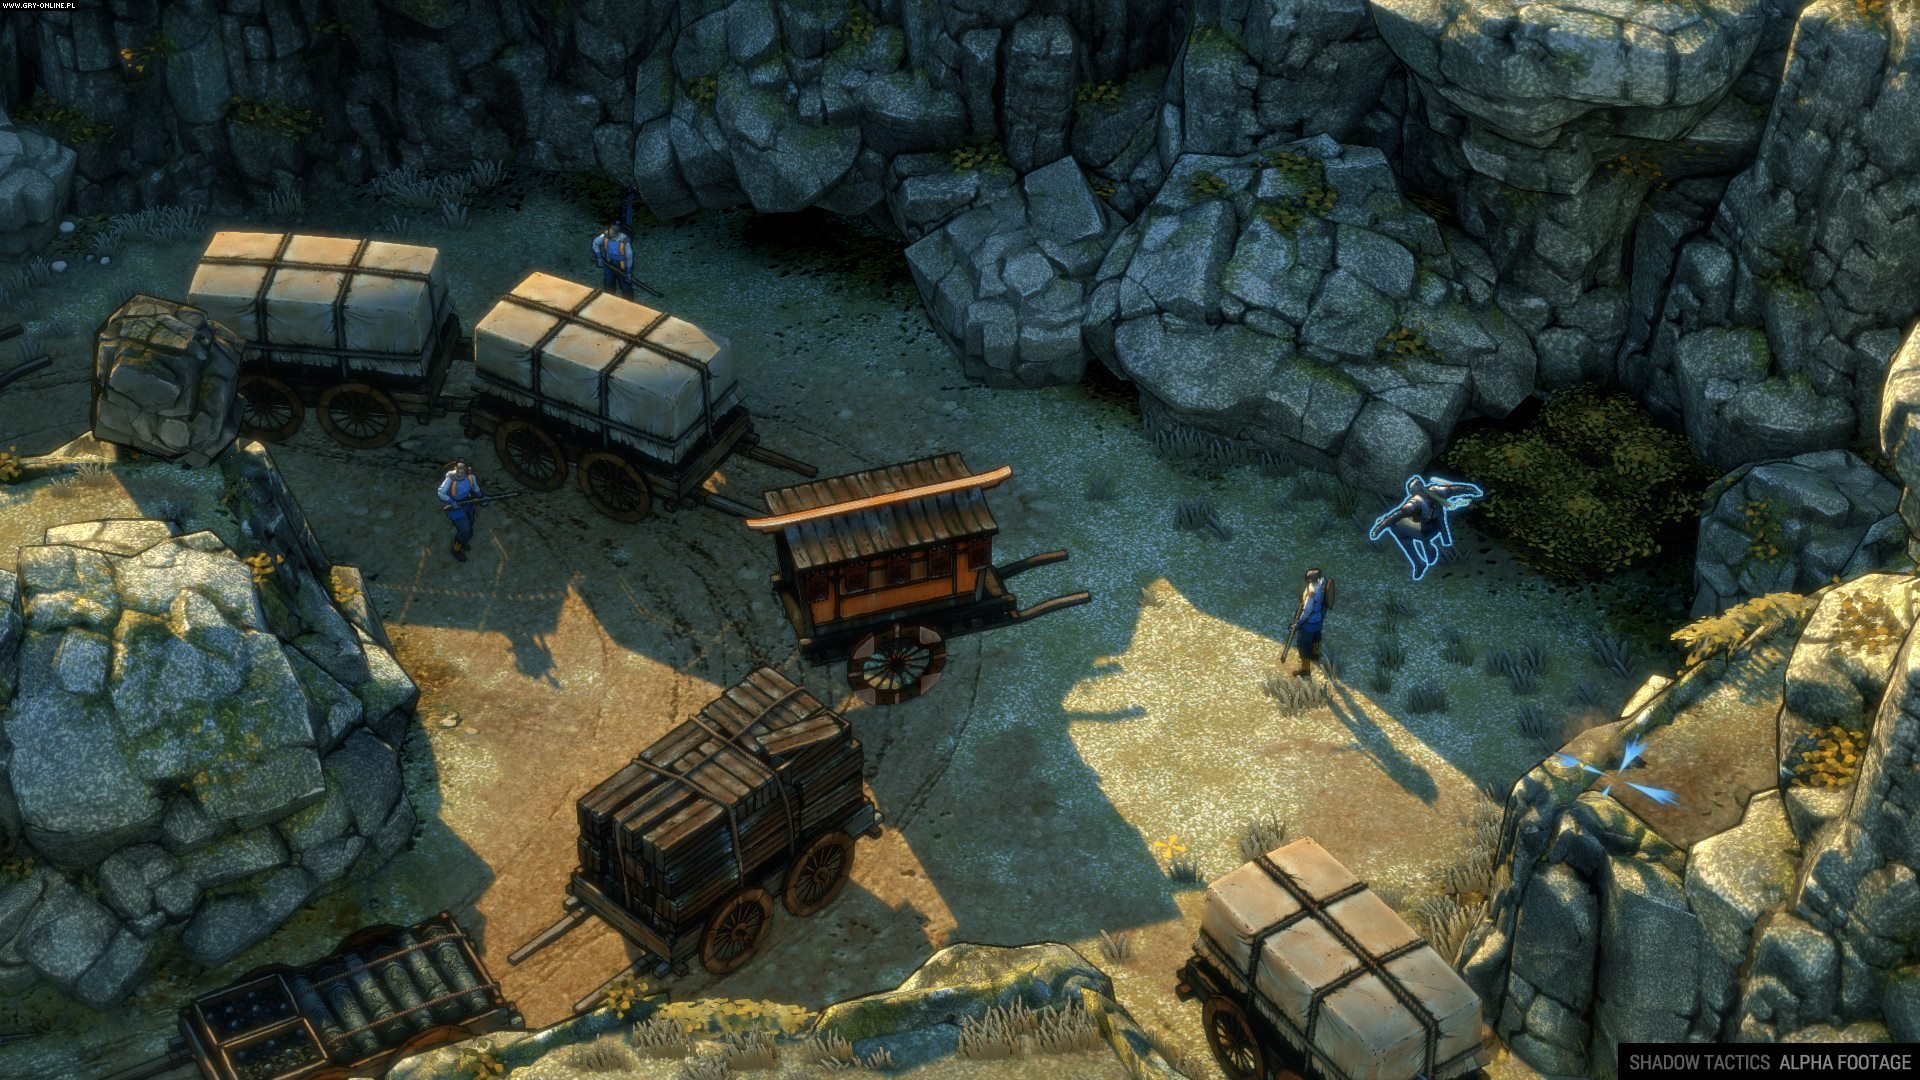 Shadow Tactics: Blades of the Shogun PC, XONE, PS4 Games Image 36/36, Mimimi Productions, Daedalic Entertainment